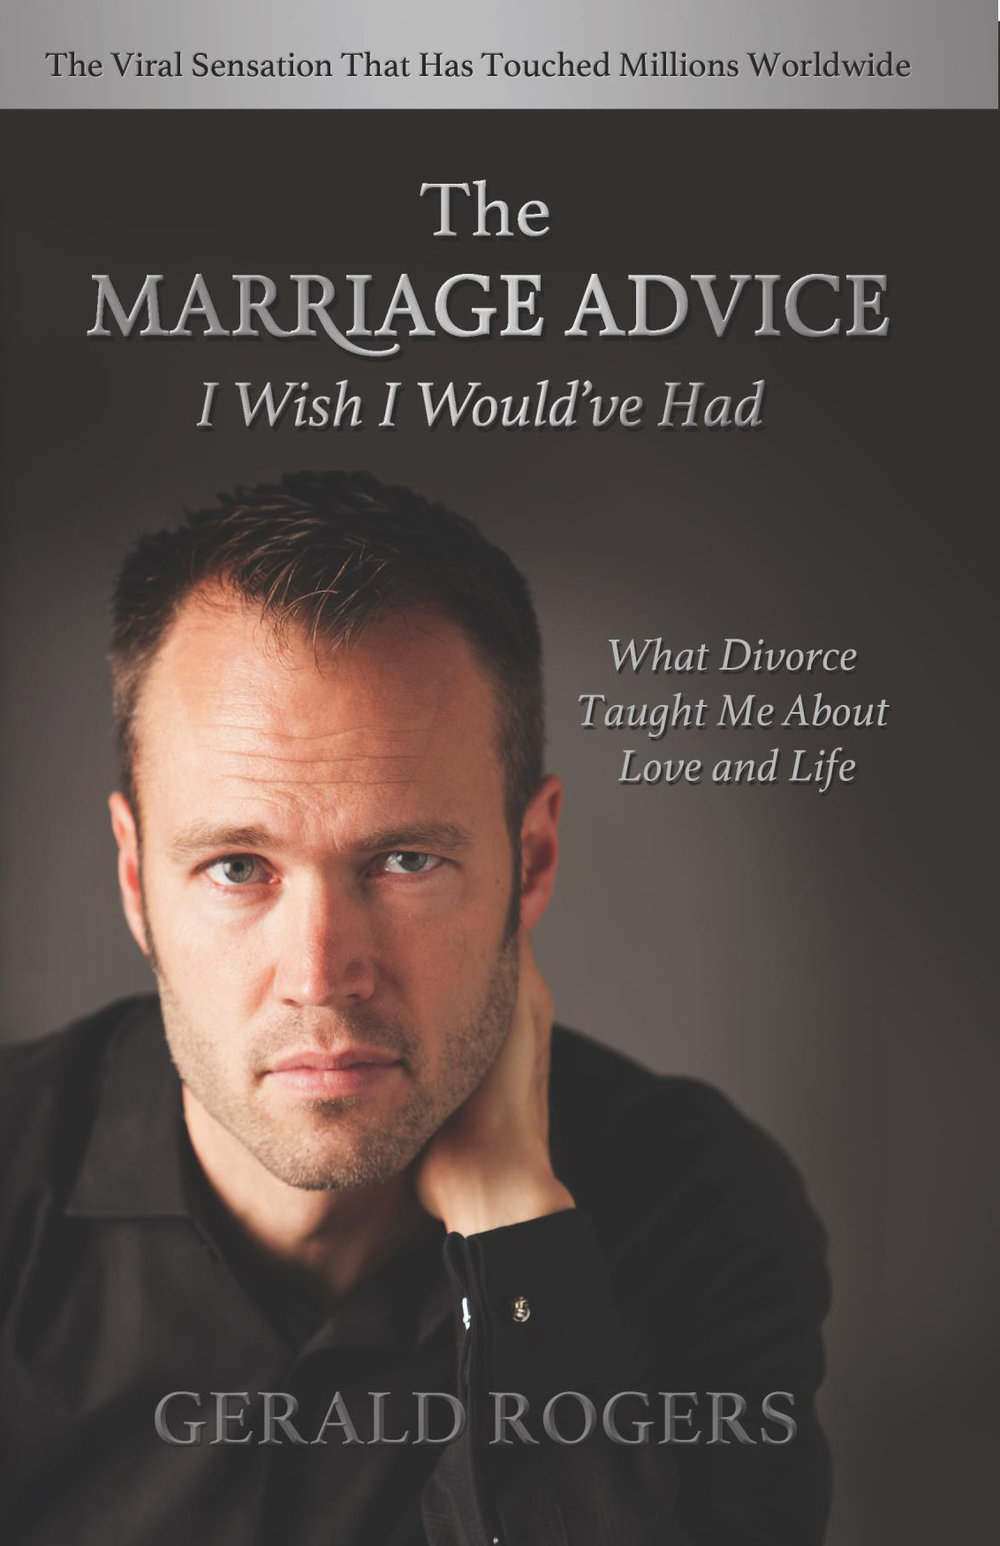 Gerald Rogers, The Marriage Advice I Wish I Would've Had